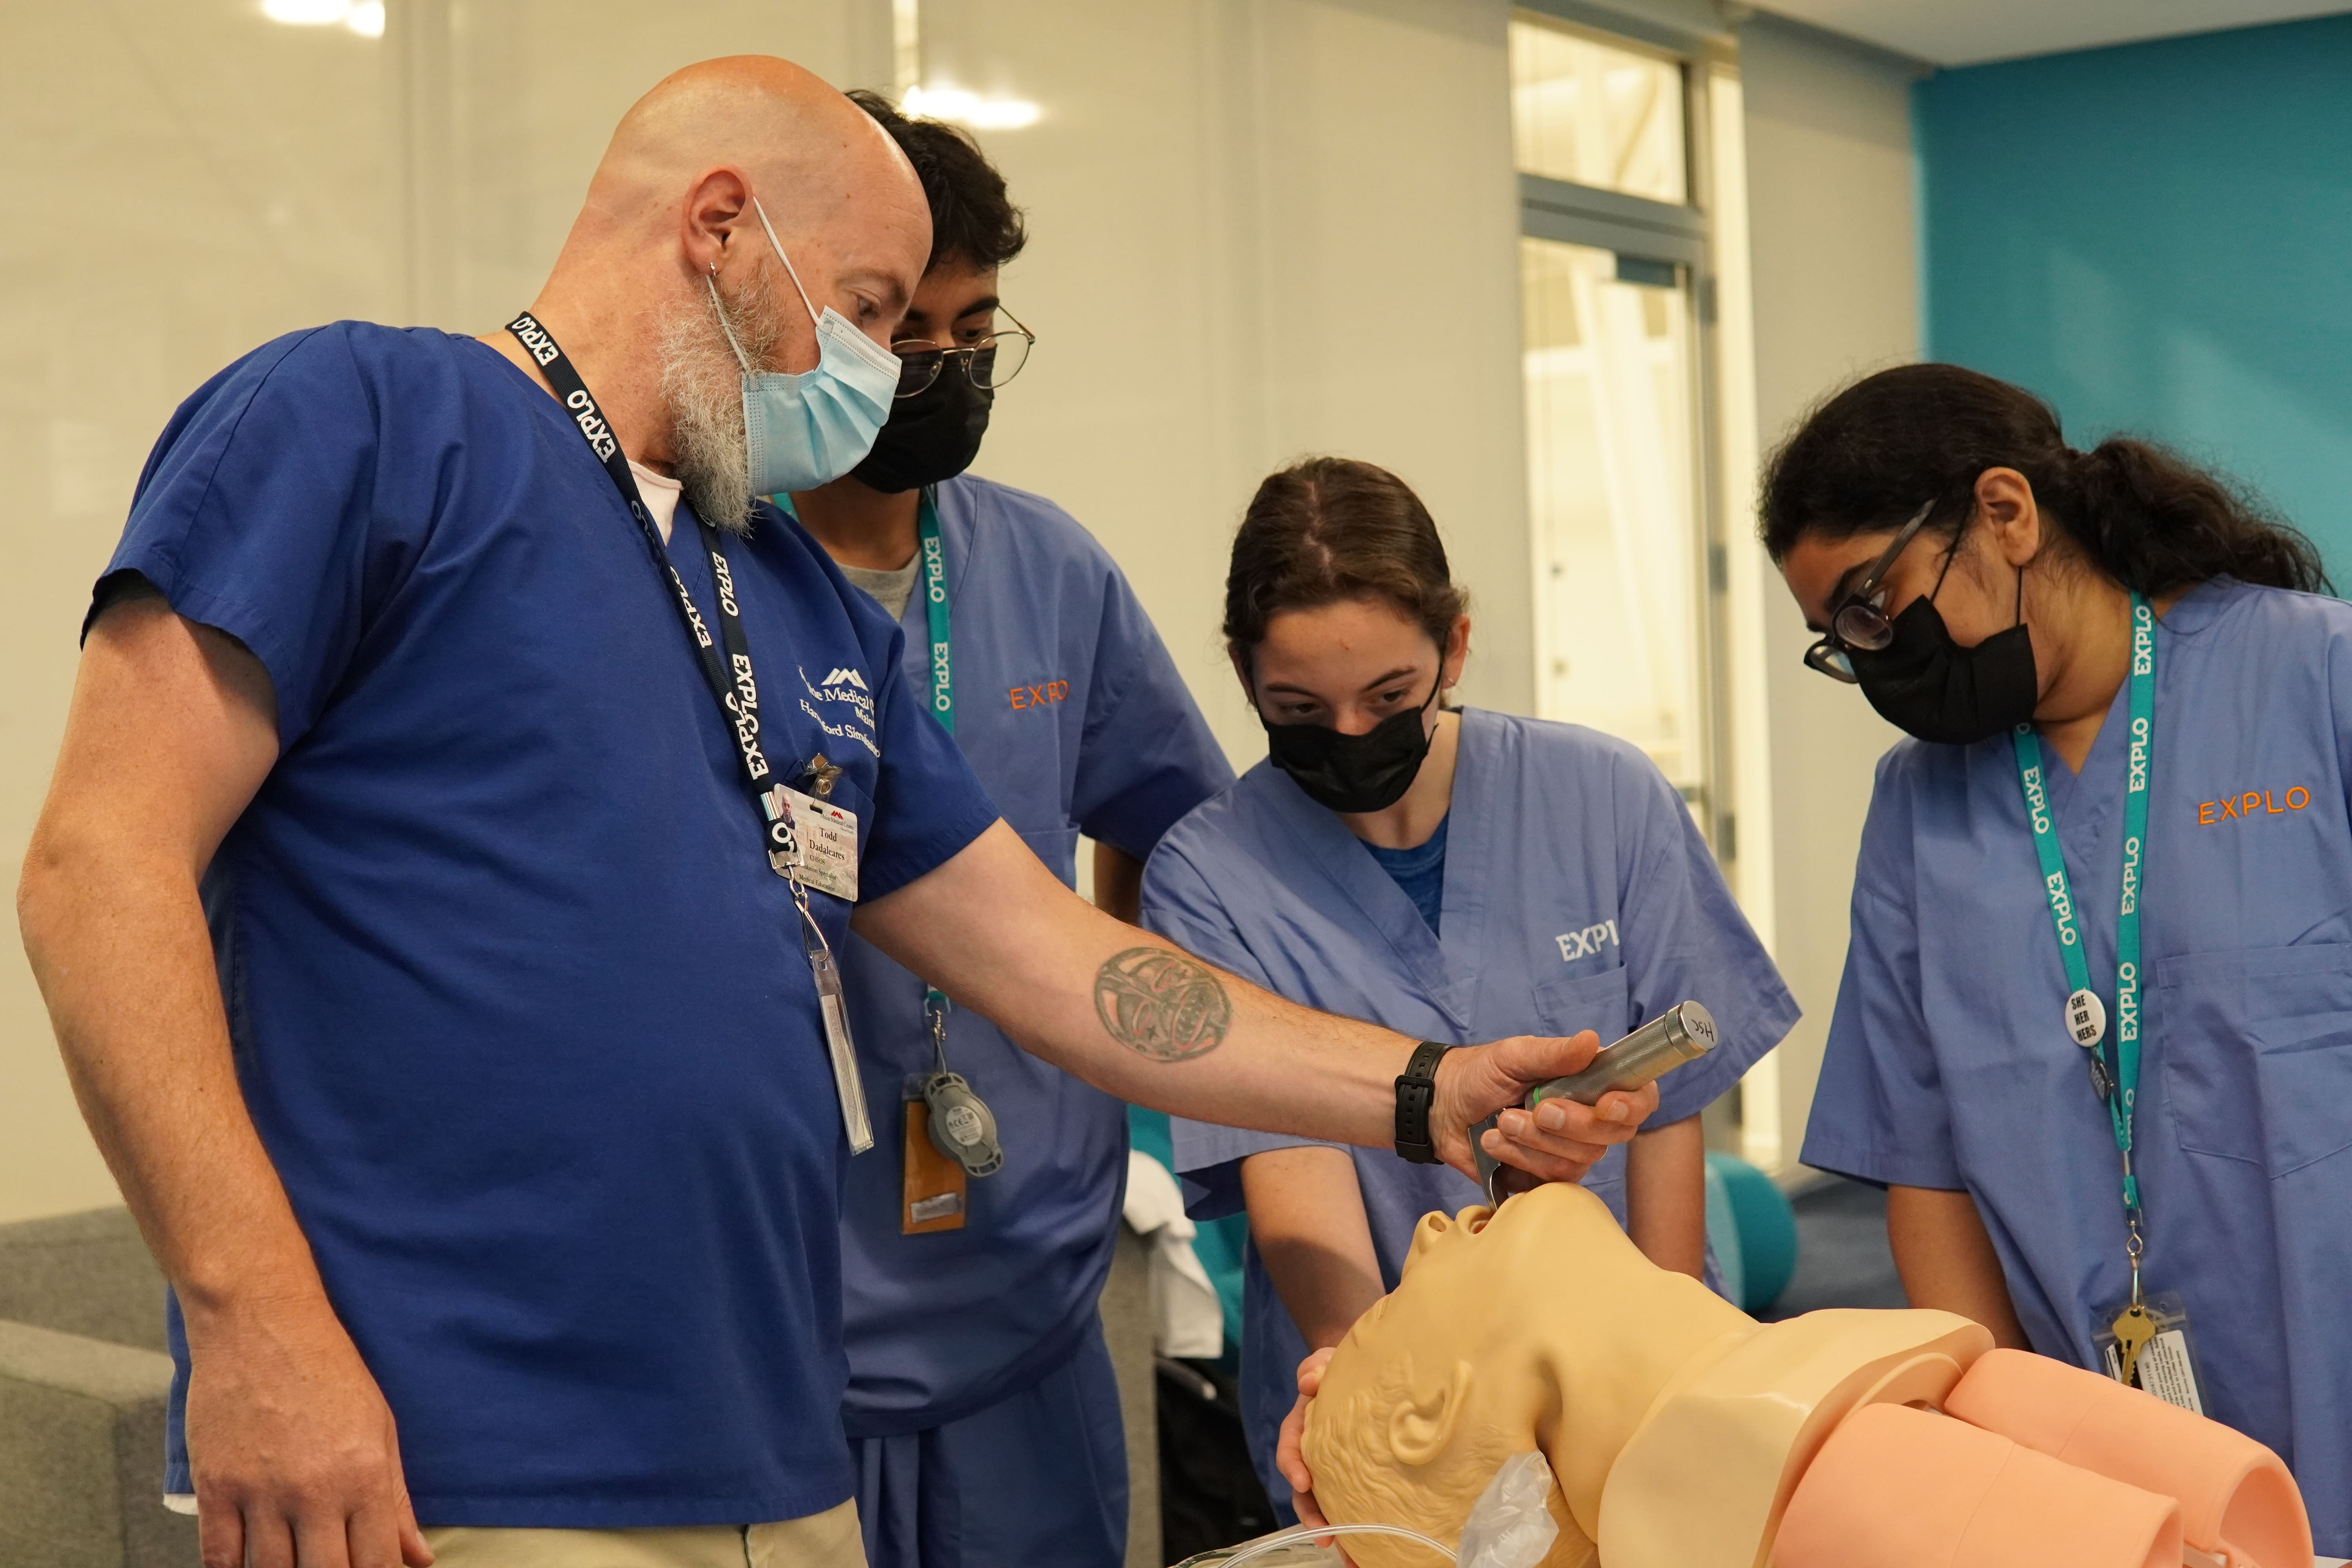 A guest instructor shows students how to intubate a patient on a dummy.